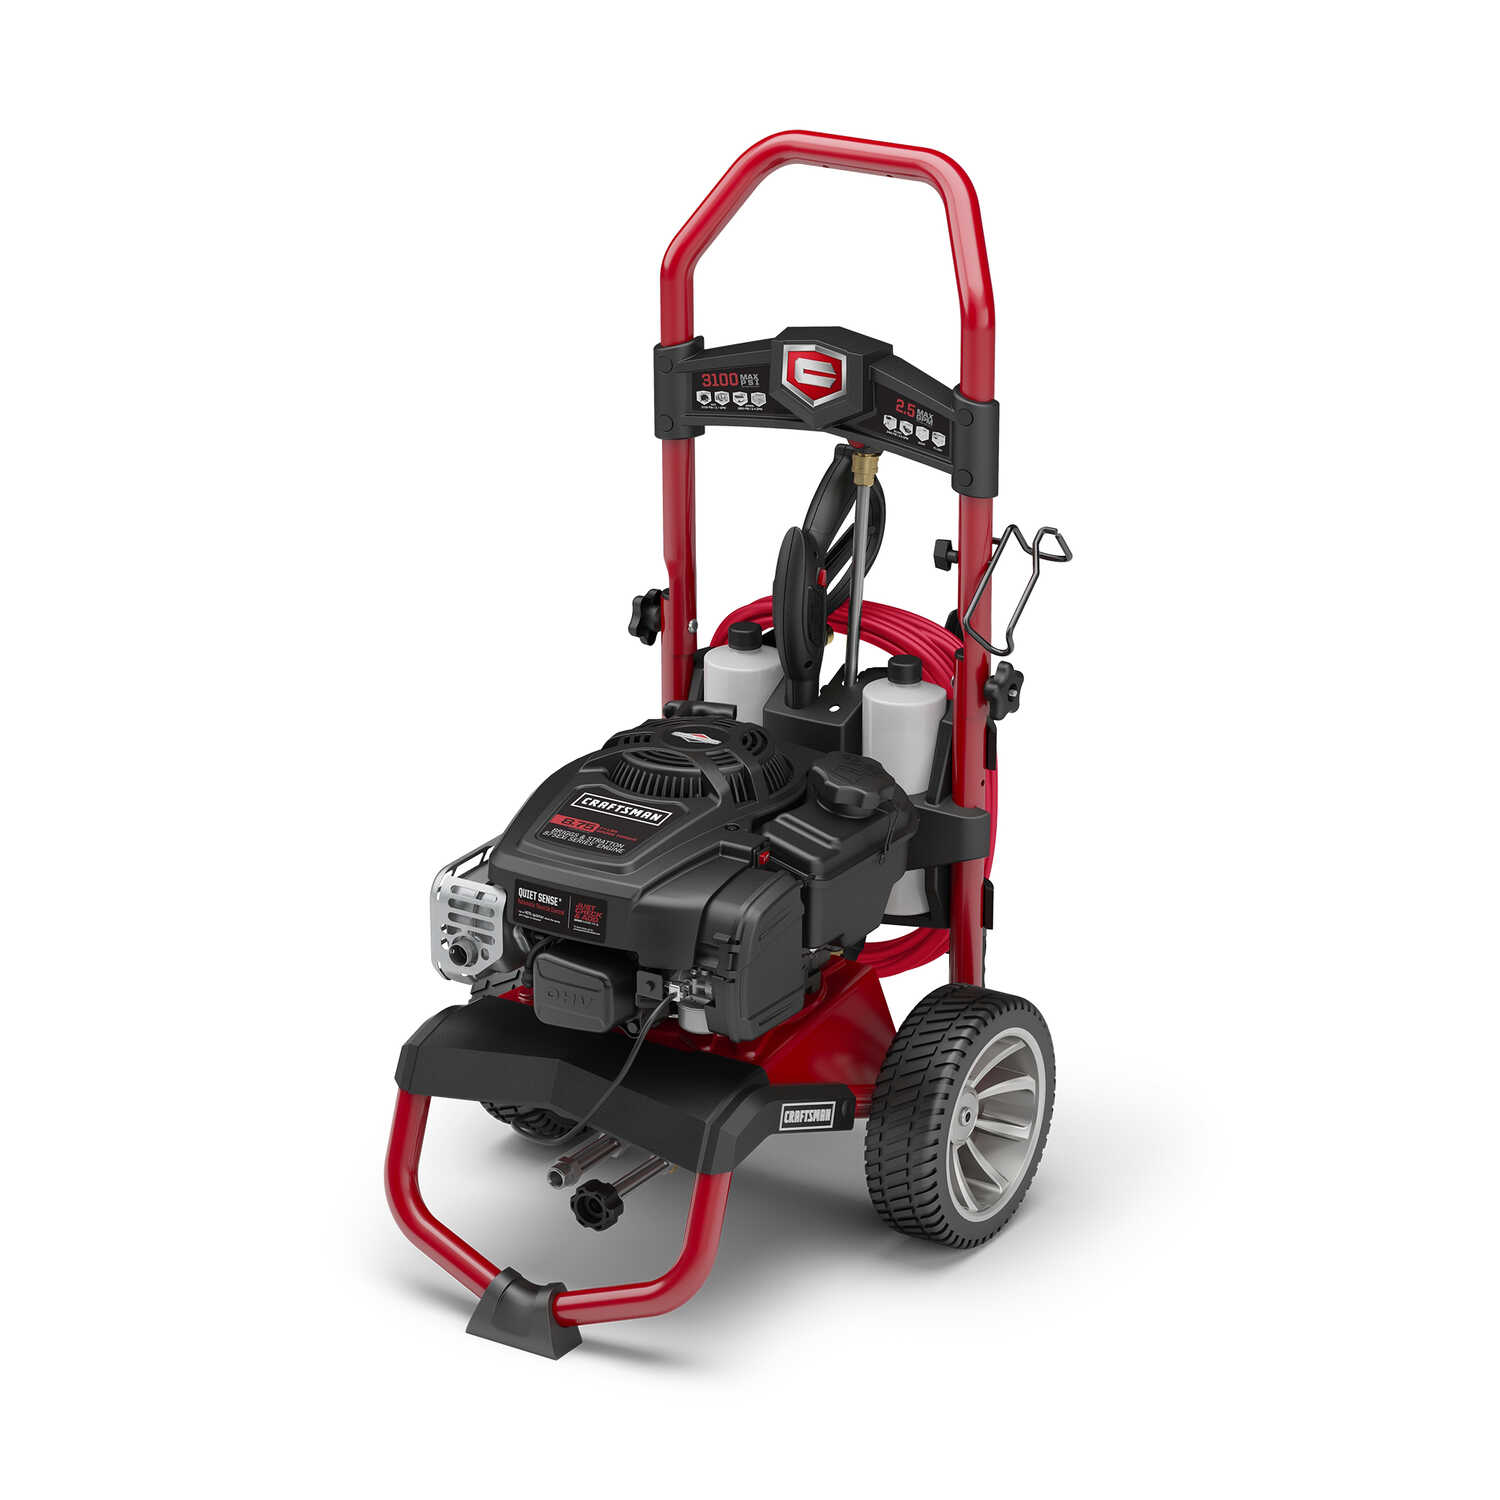 Craftsman  Briggs & Stratton  3100 psi Gasoline  2.7 gpm Pressure Washer